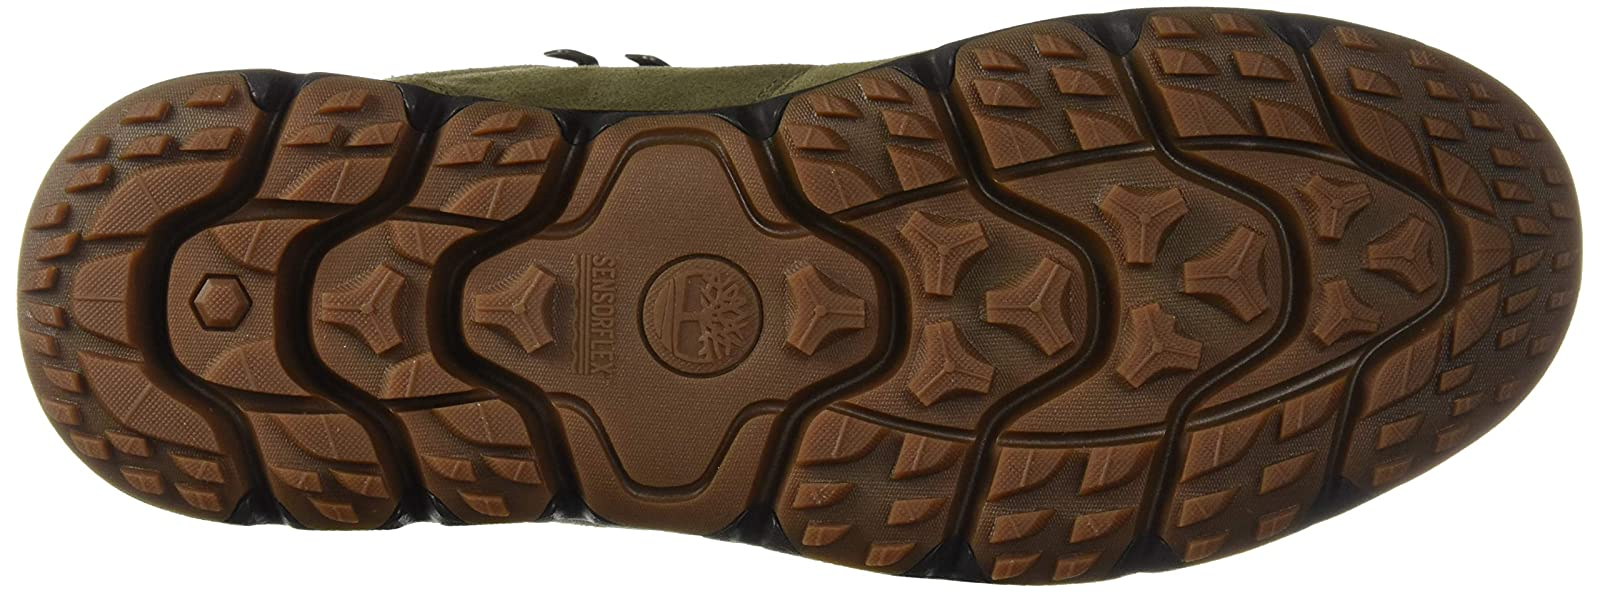 Timberland Men's World Hiker Mid Ankle TB0A1RJWA58 - 3